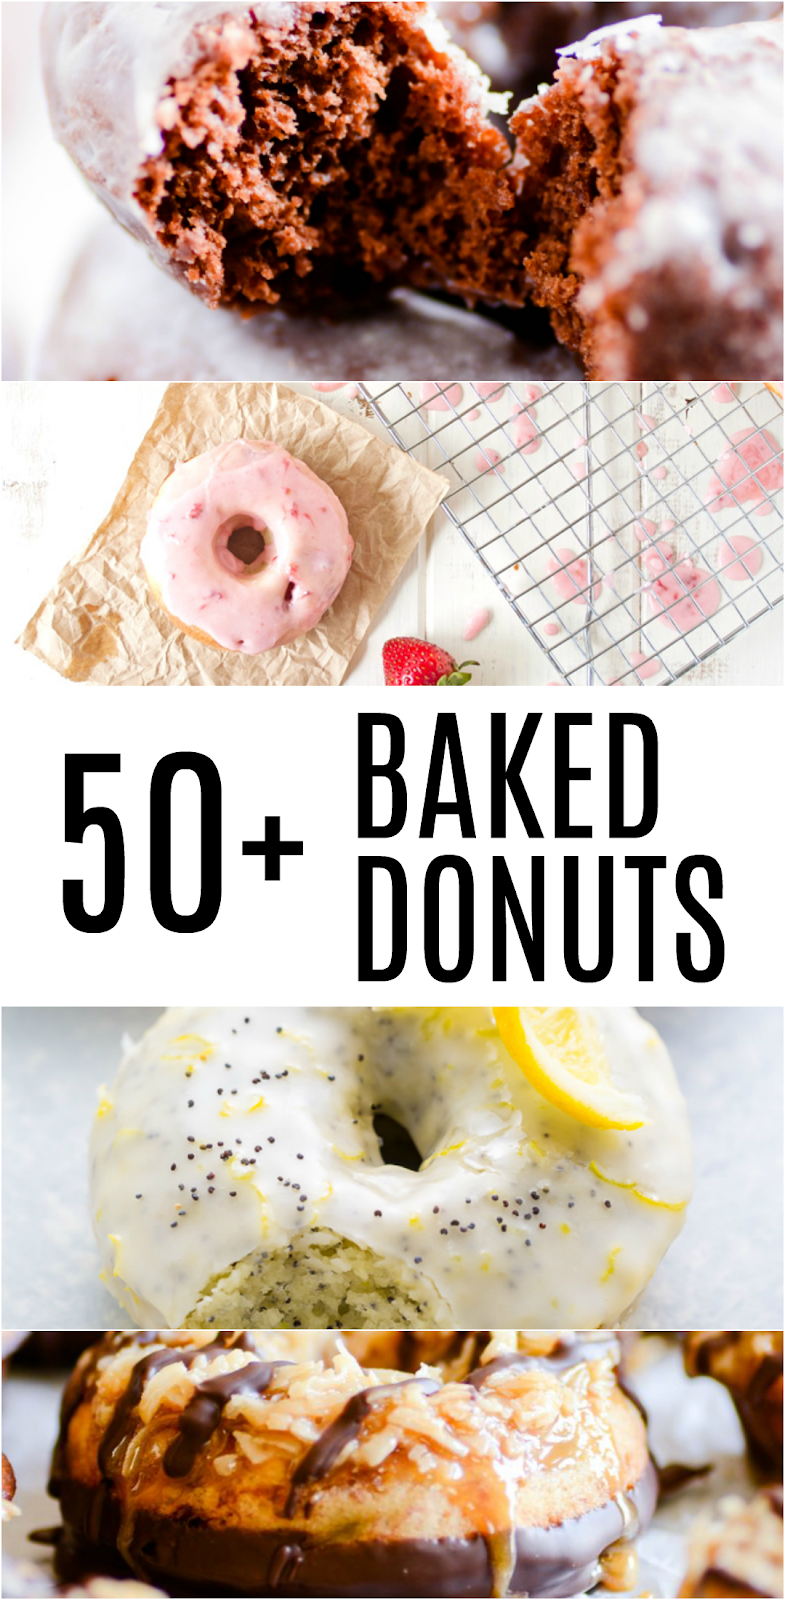 More than 50 recipes for baked donuts including Lemon Poppyseed Donuts, S'mores Donuts, and Churro Donuts!